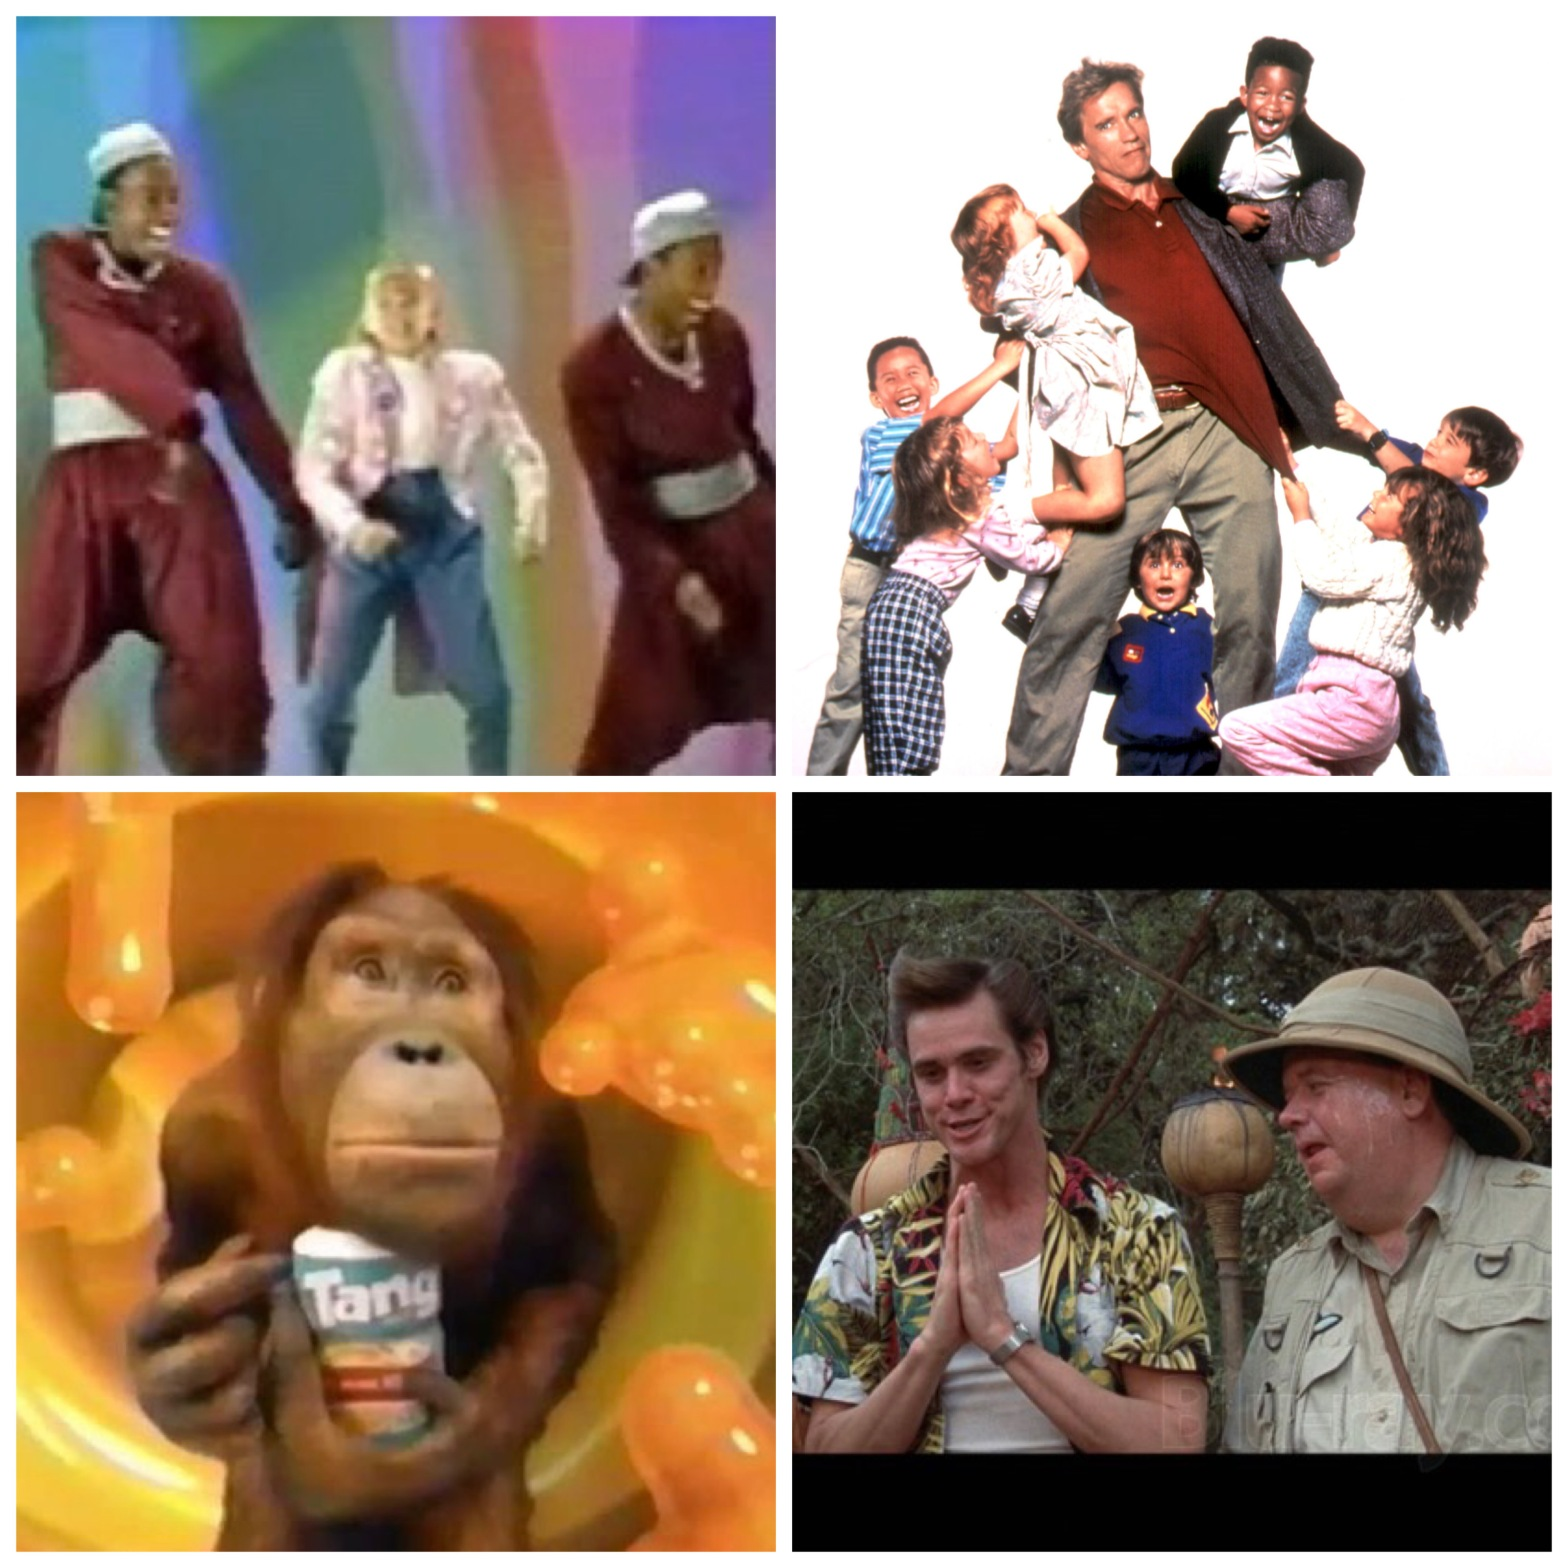 The intro from Disney's Adventures In Wonderland, Kindergarten Cop, the Tang monkey, and Ace Ventura: When Nature Calls.